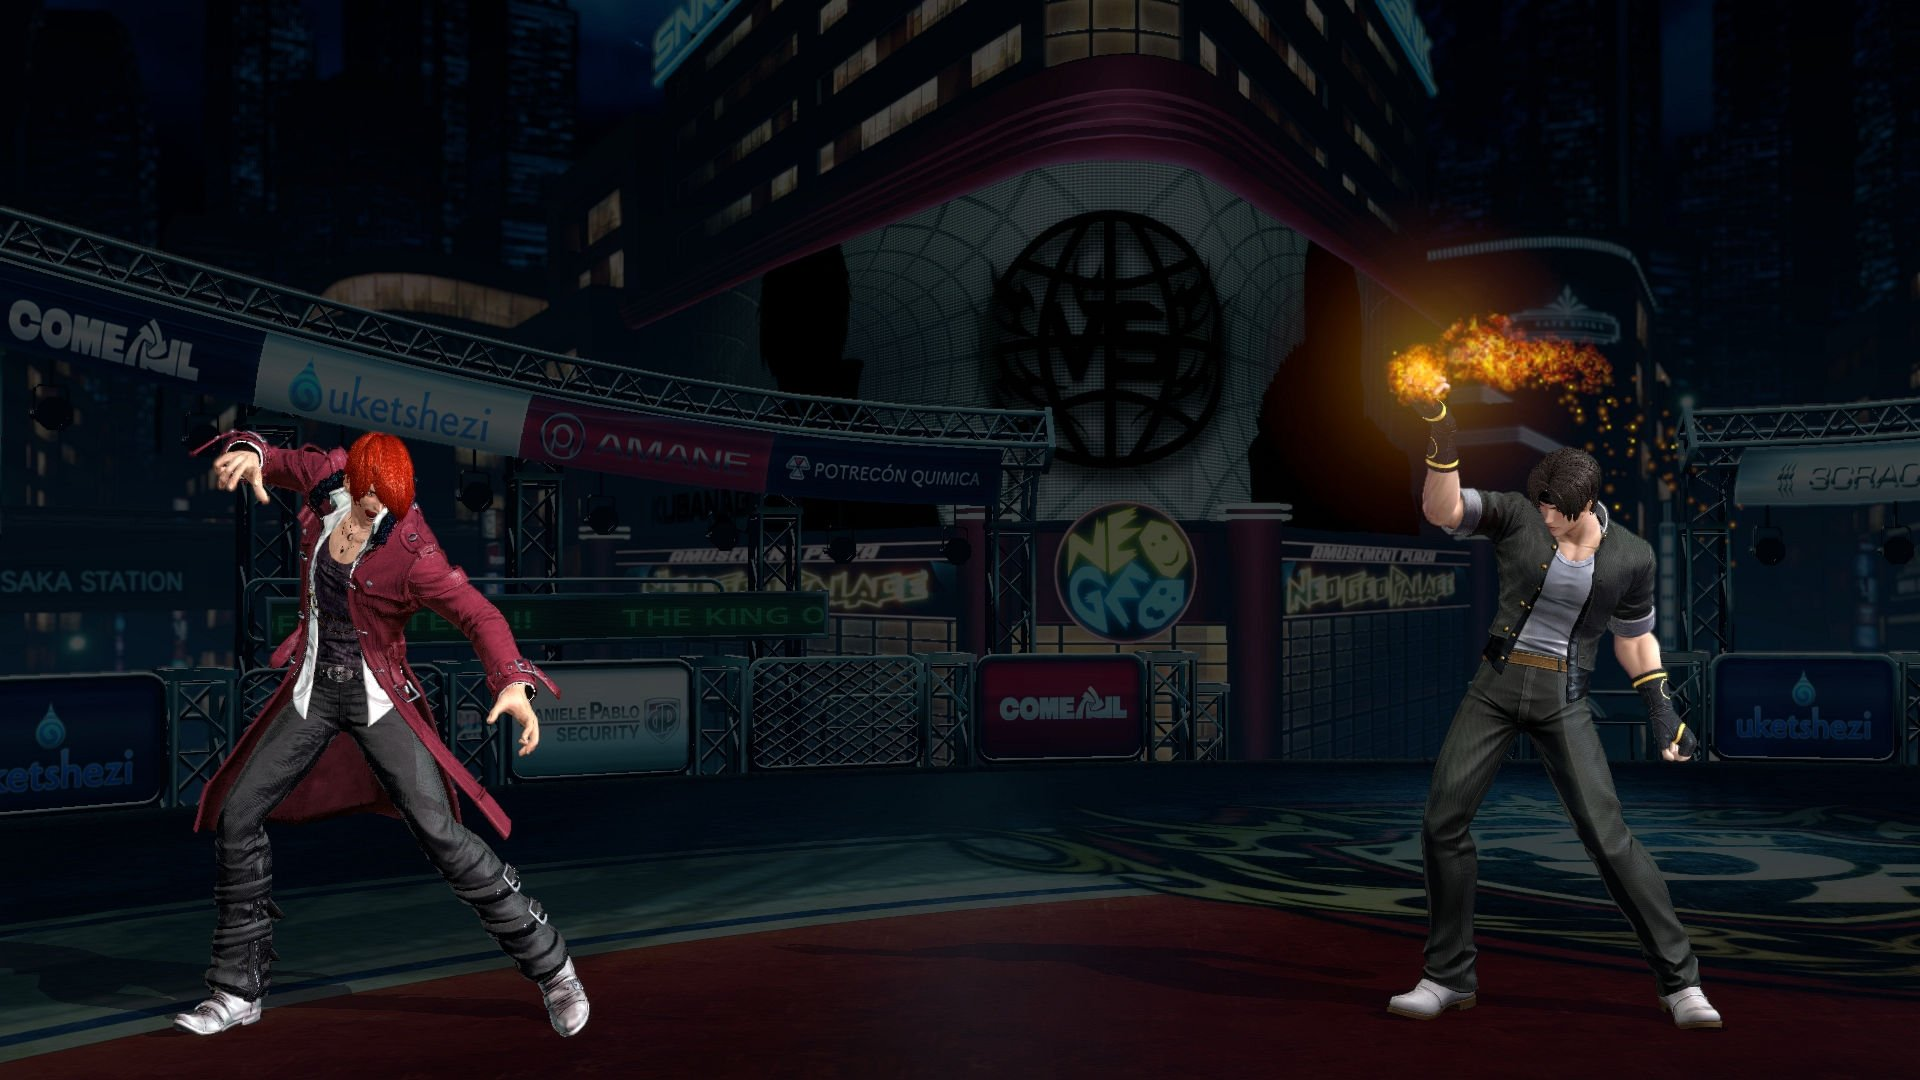 king_of_fighters_xiv-3371165.jpg